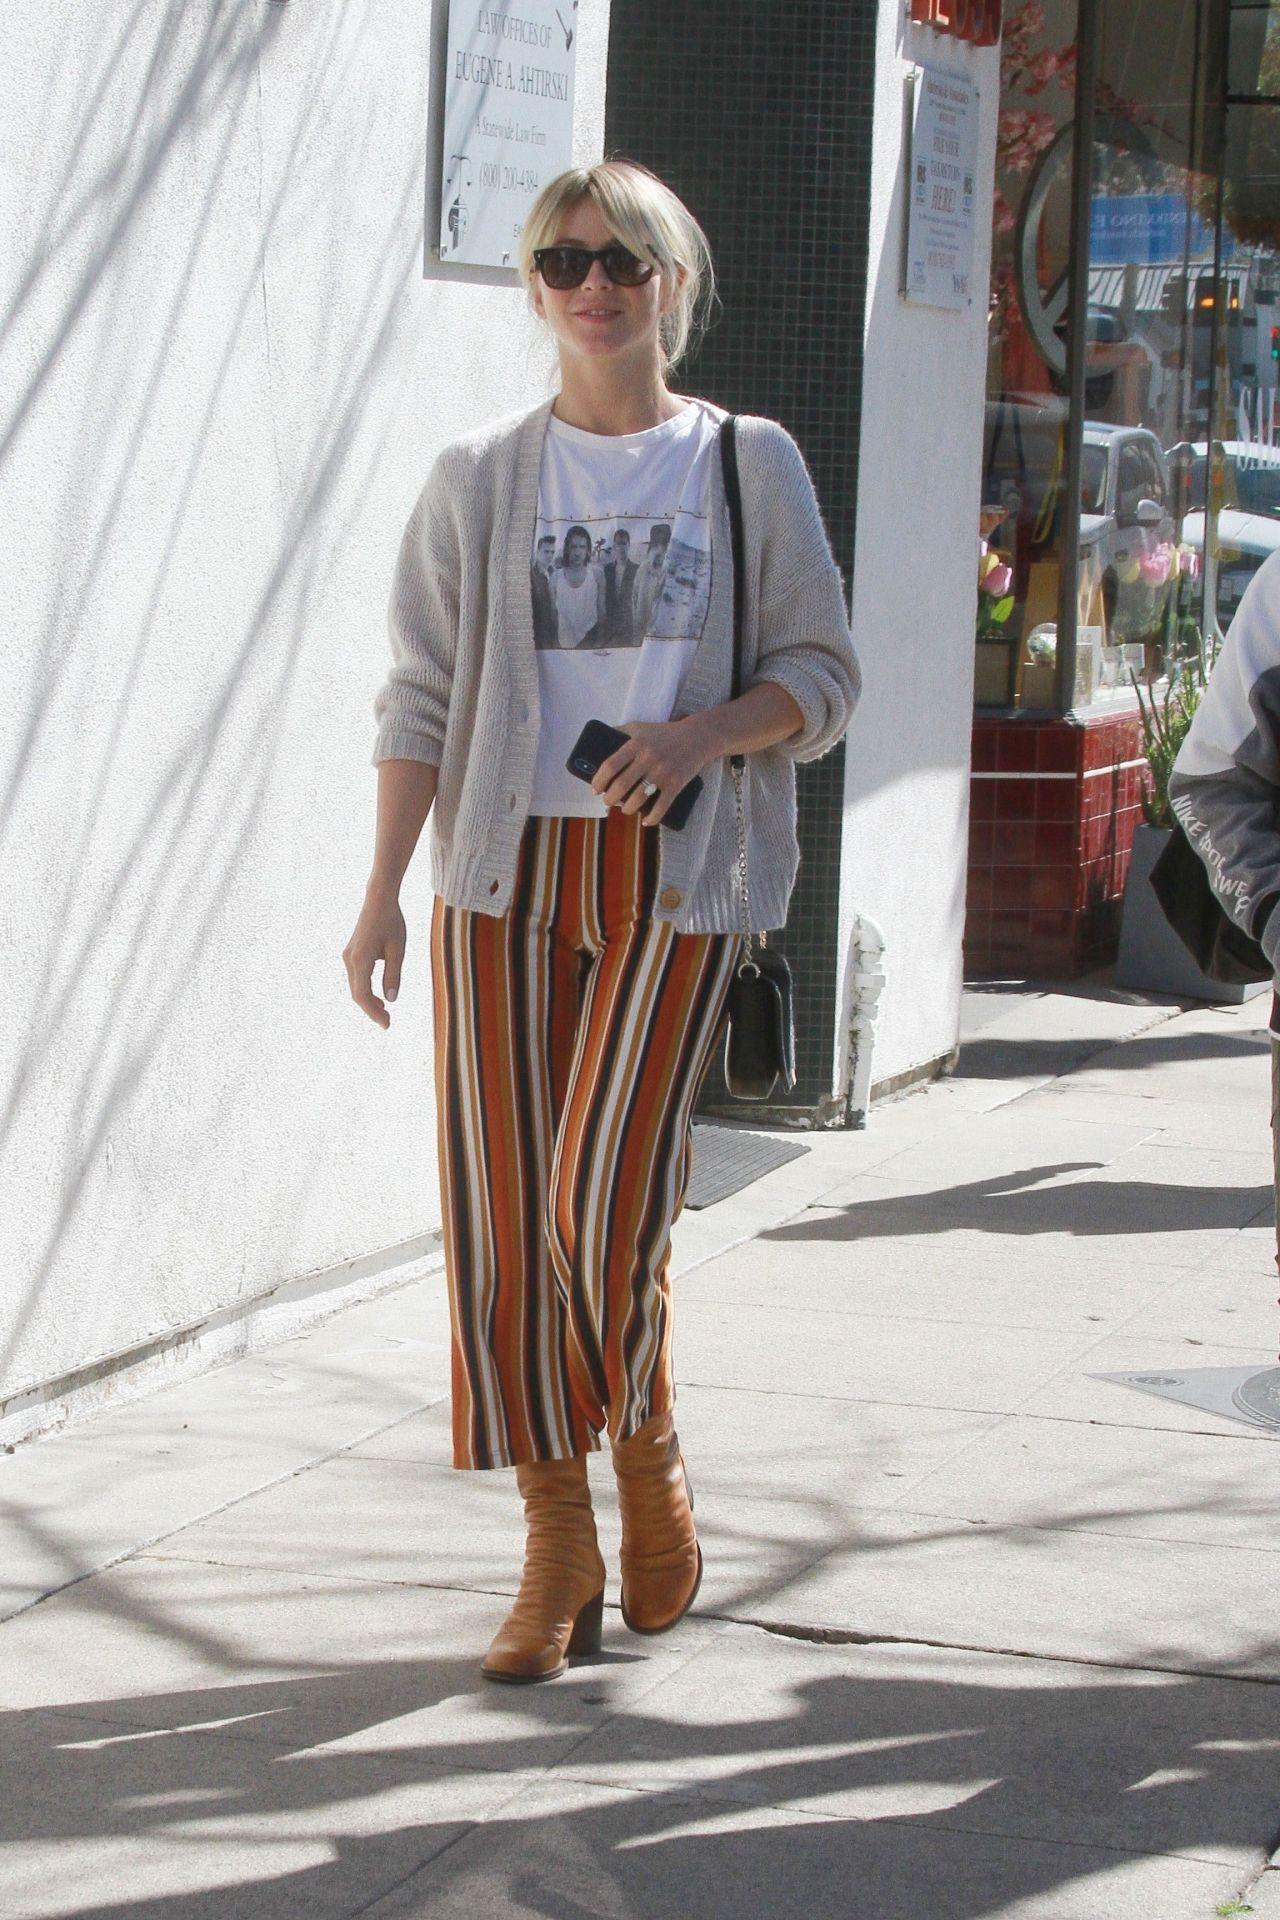 Julianne Hough Casual Style 02 23 2019